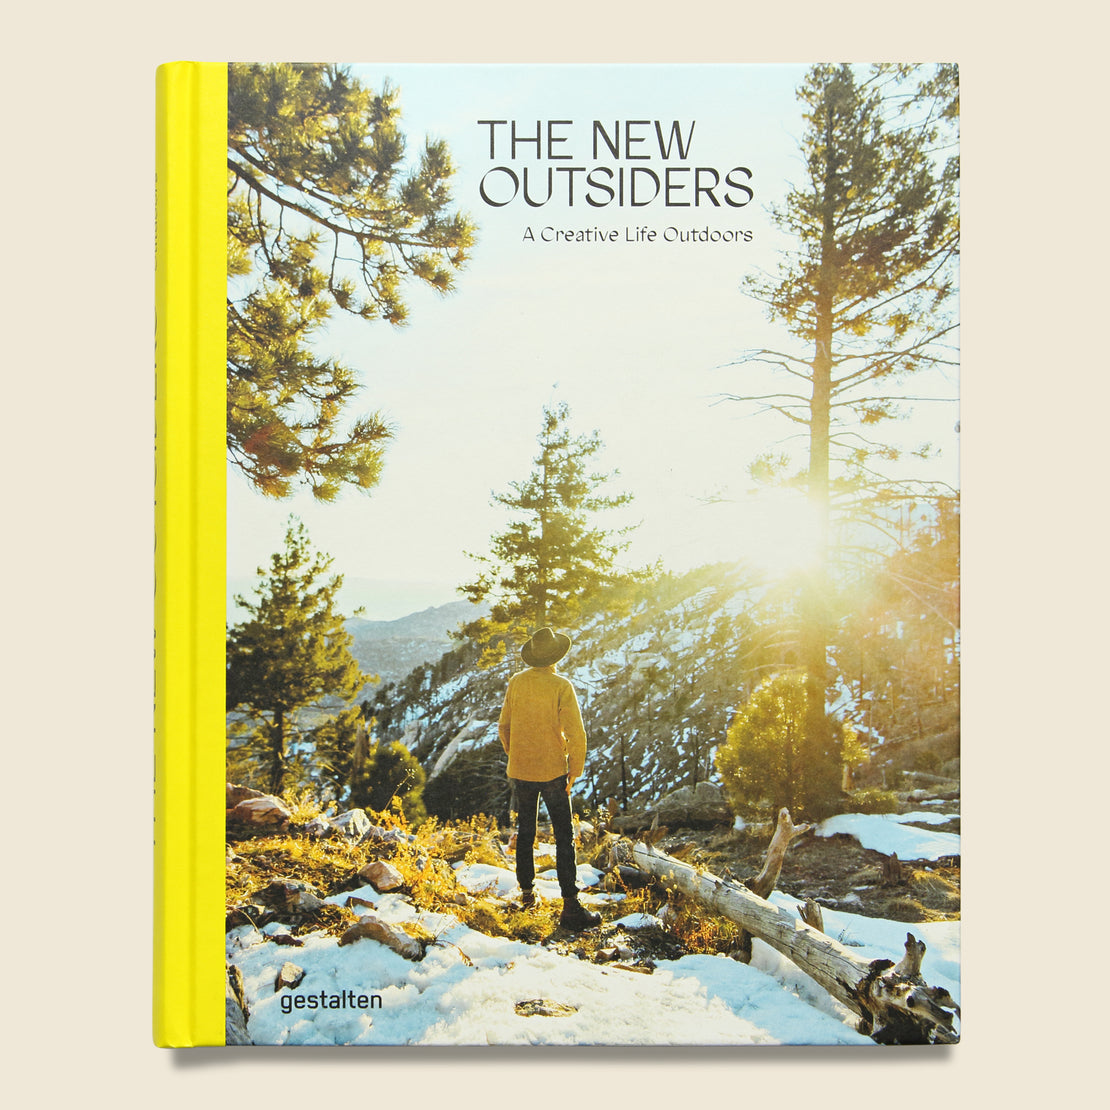 Bookstore The New Outsiders: A Creative Life Outdoors - Gestalten